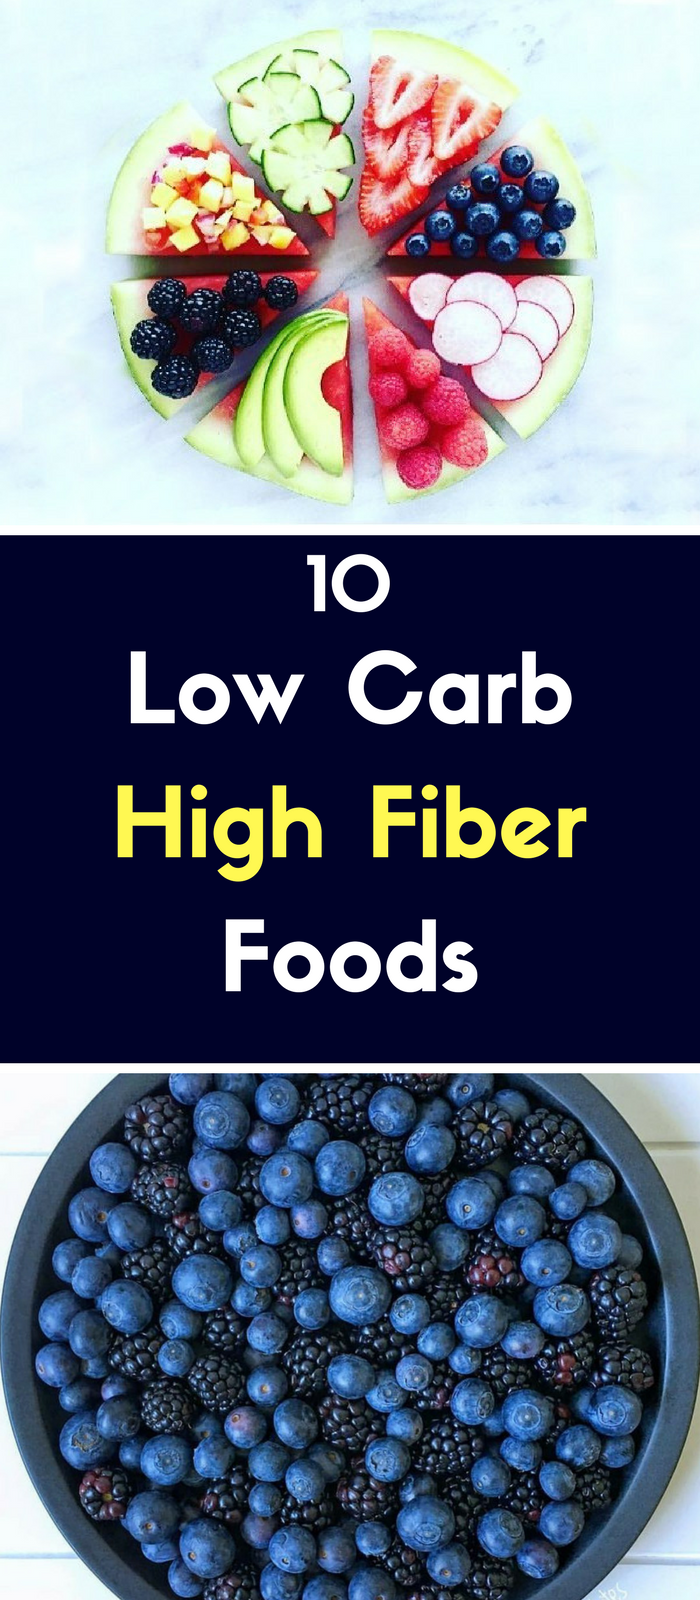 10 Low Carb High Fiber Foods Foods that are low in